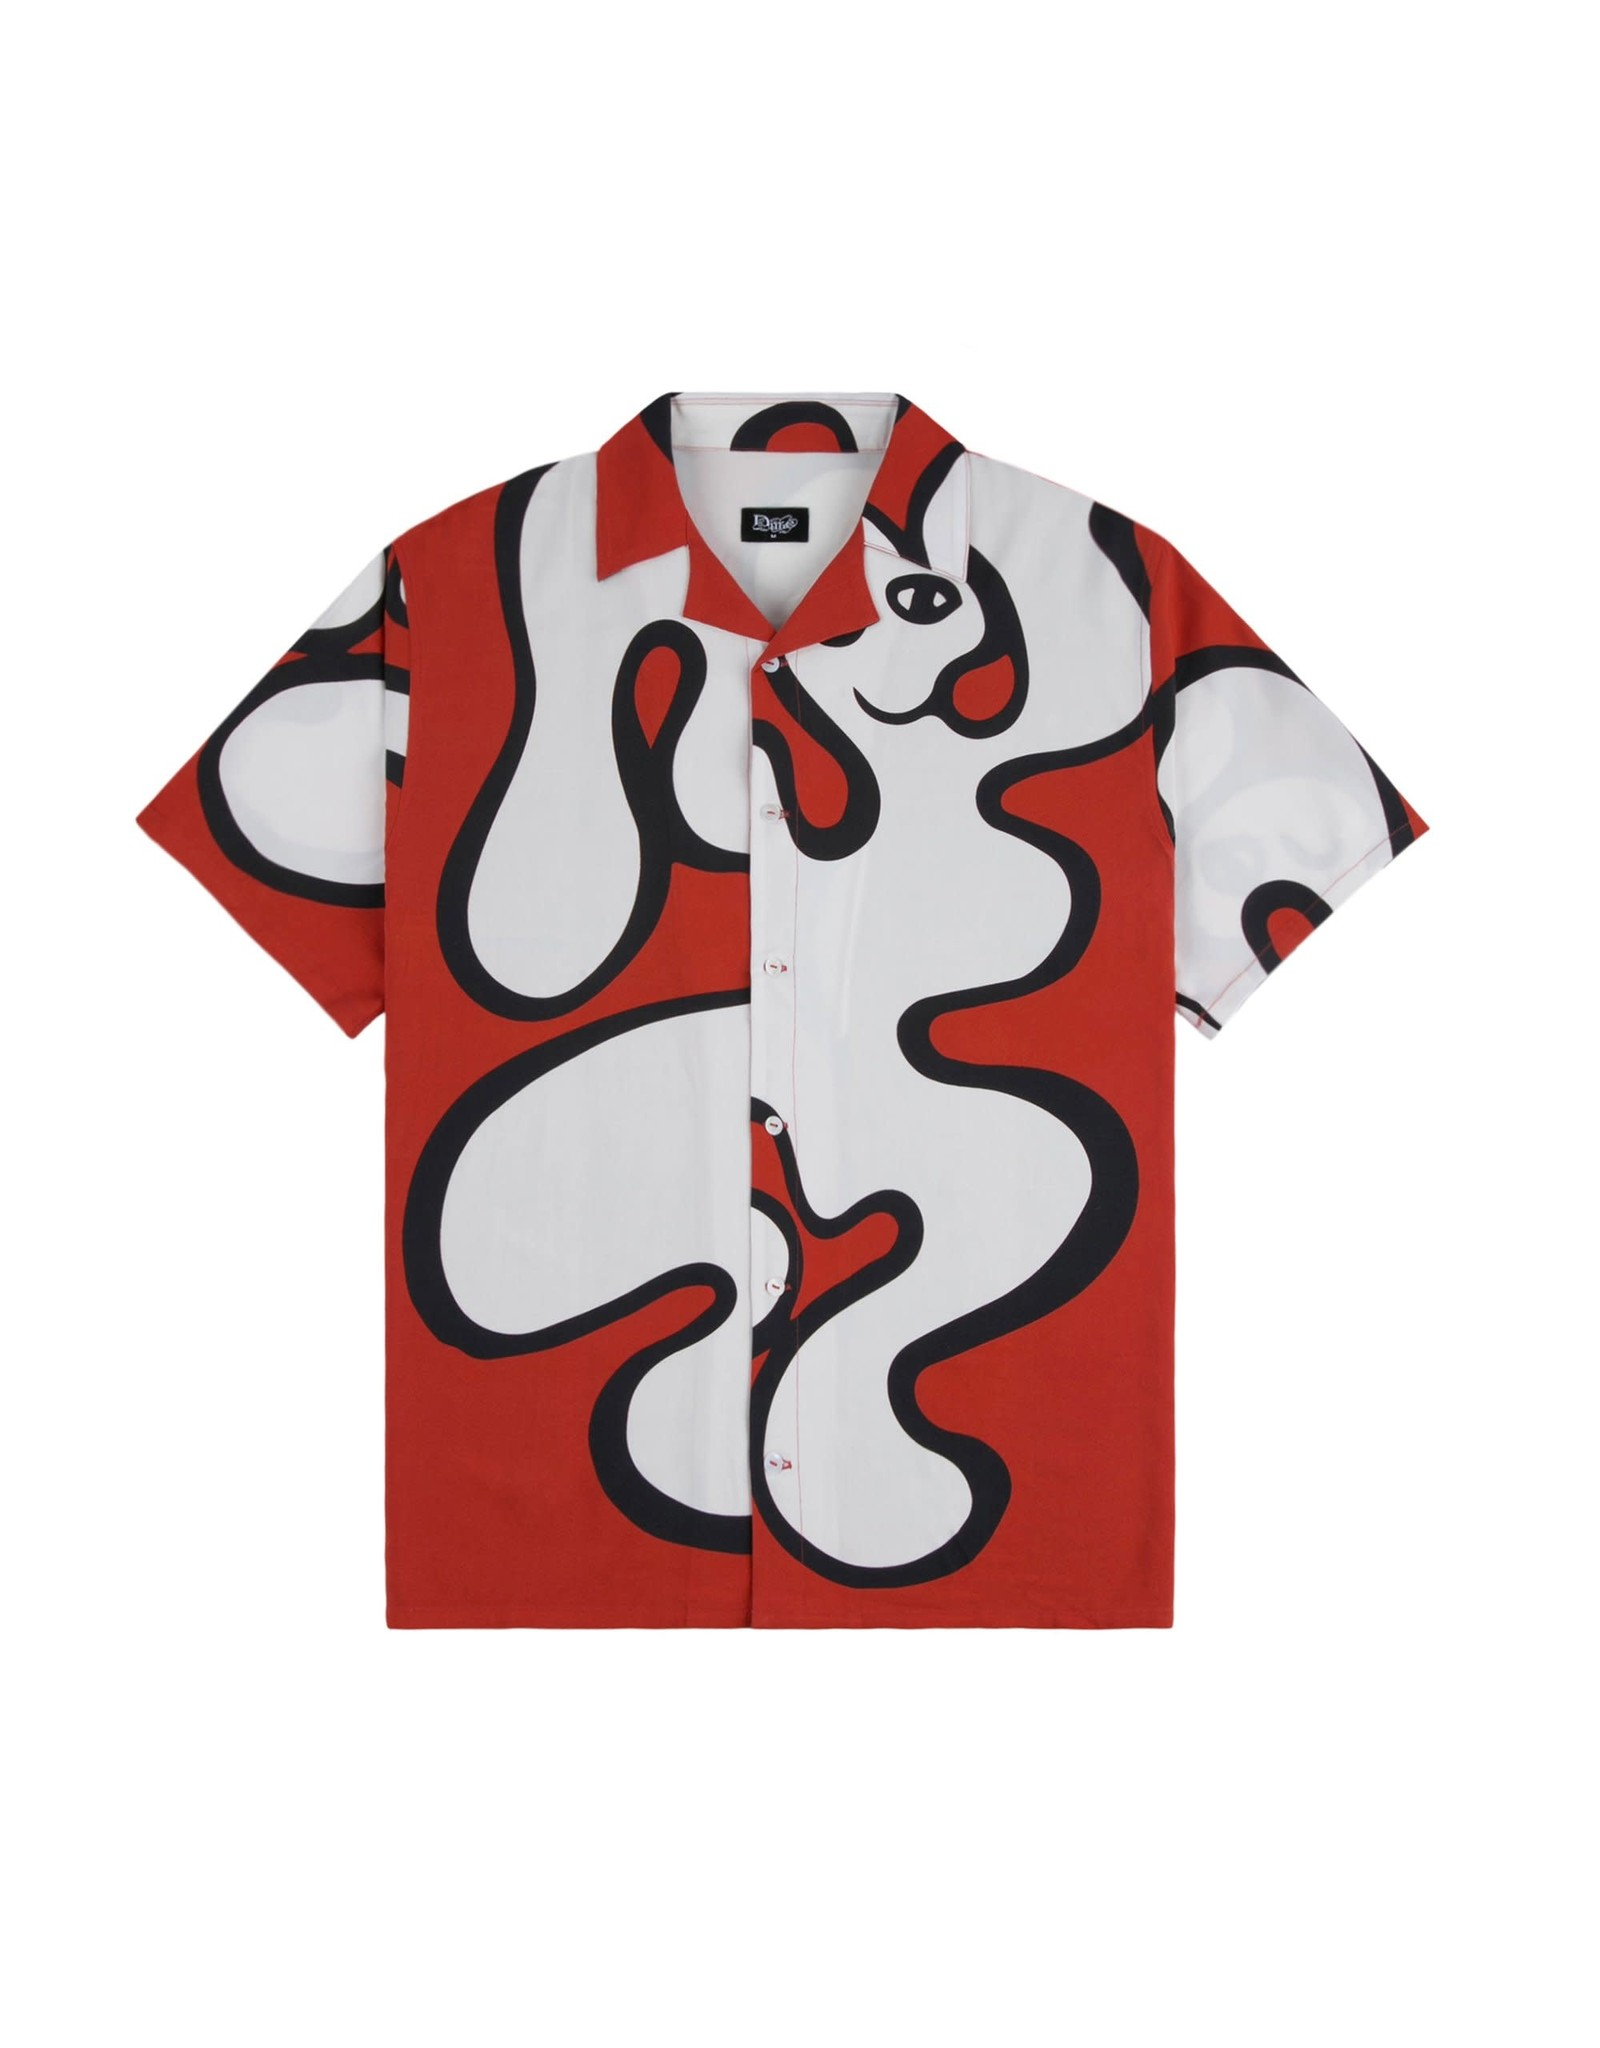 Dime Chilling Rayon Shirt - Red